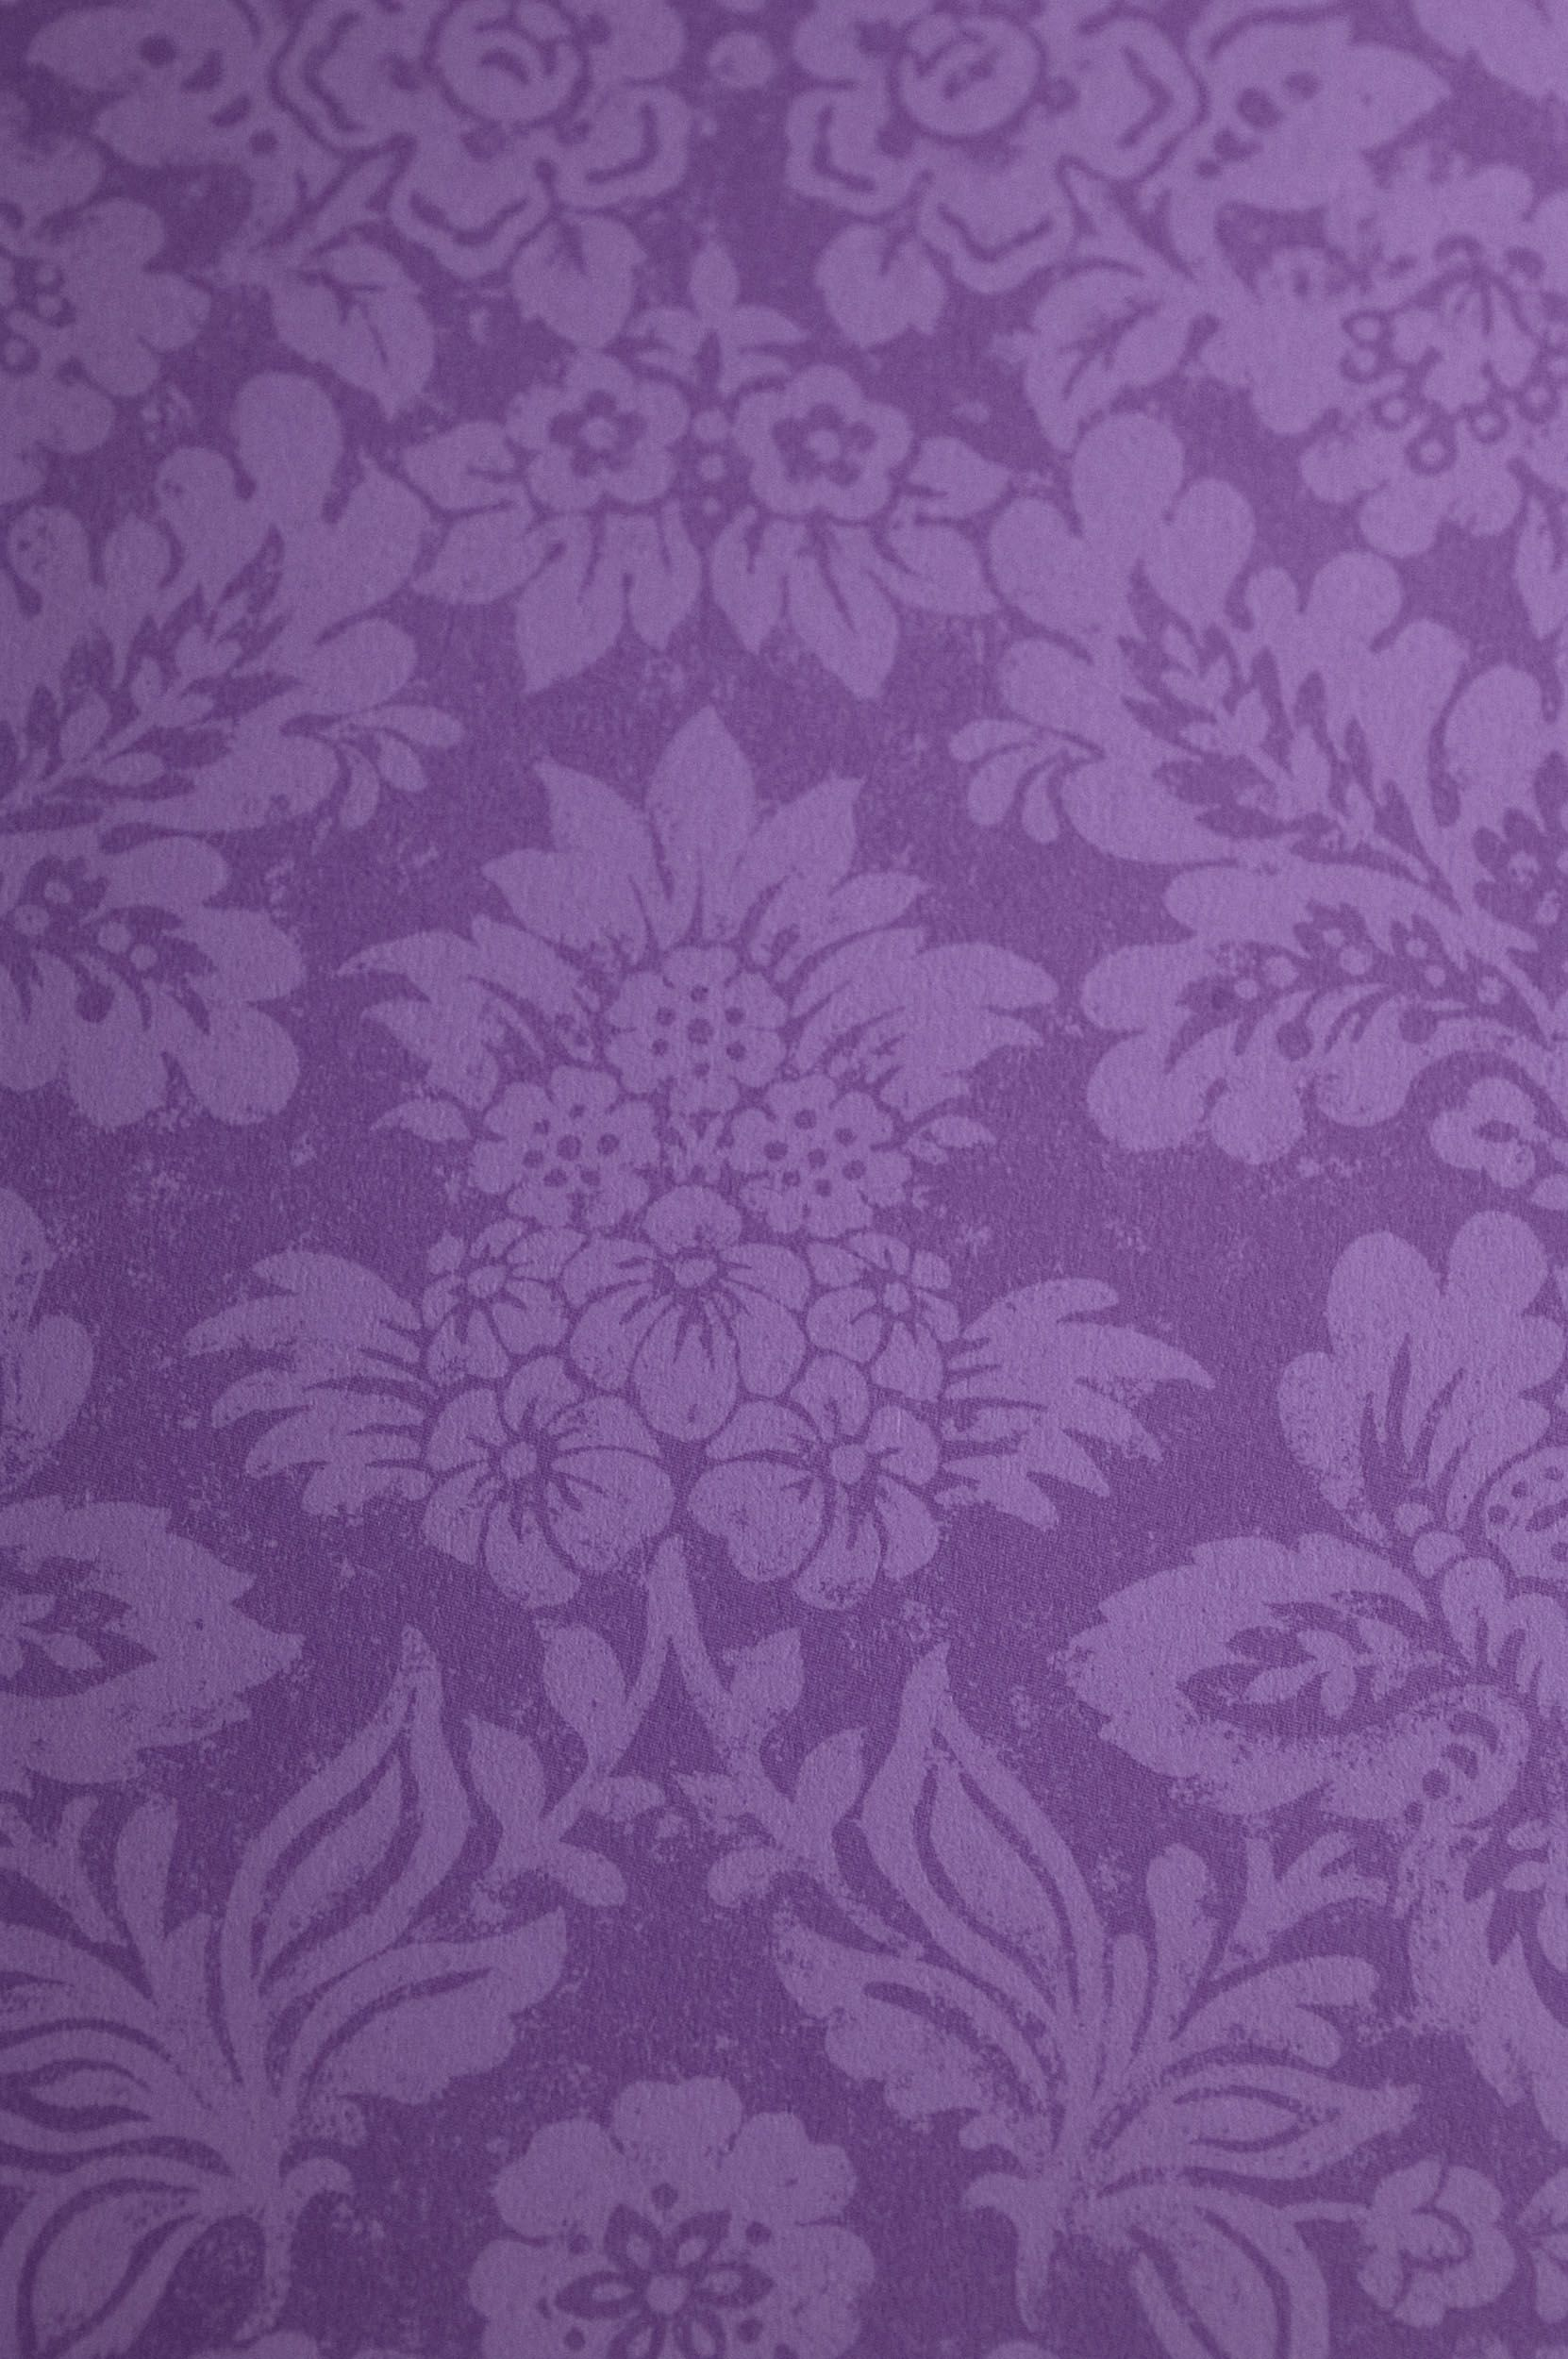 Purple Wallpaper Victorian Gothic Home Room